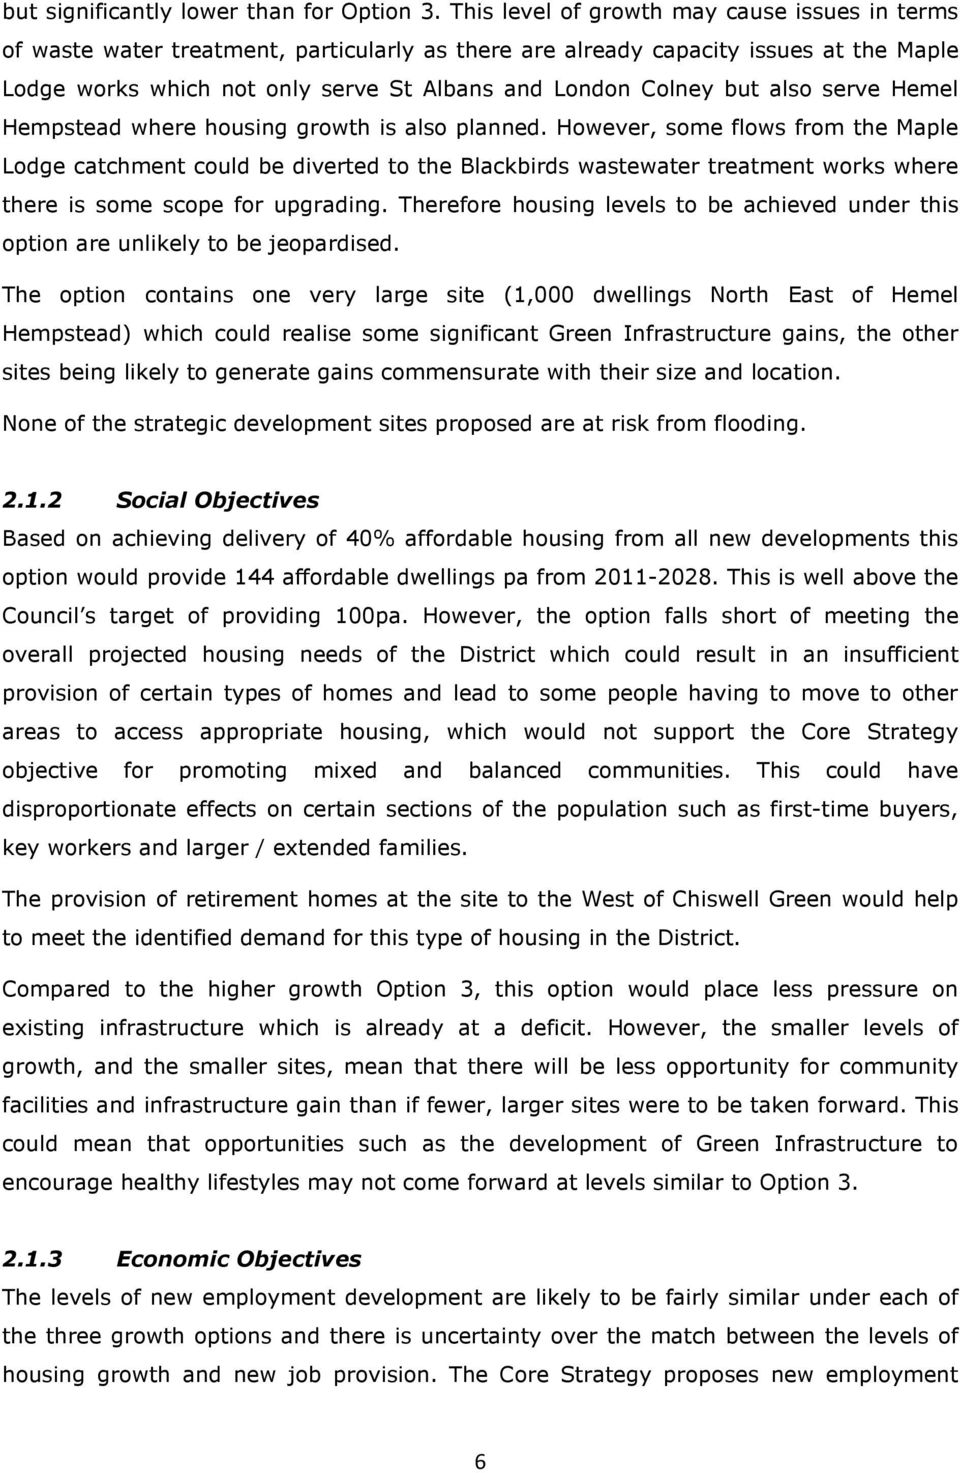 but also serve Hemel Hempstead where housing growth is also planned.